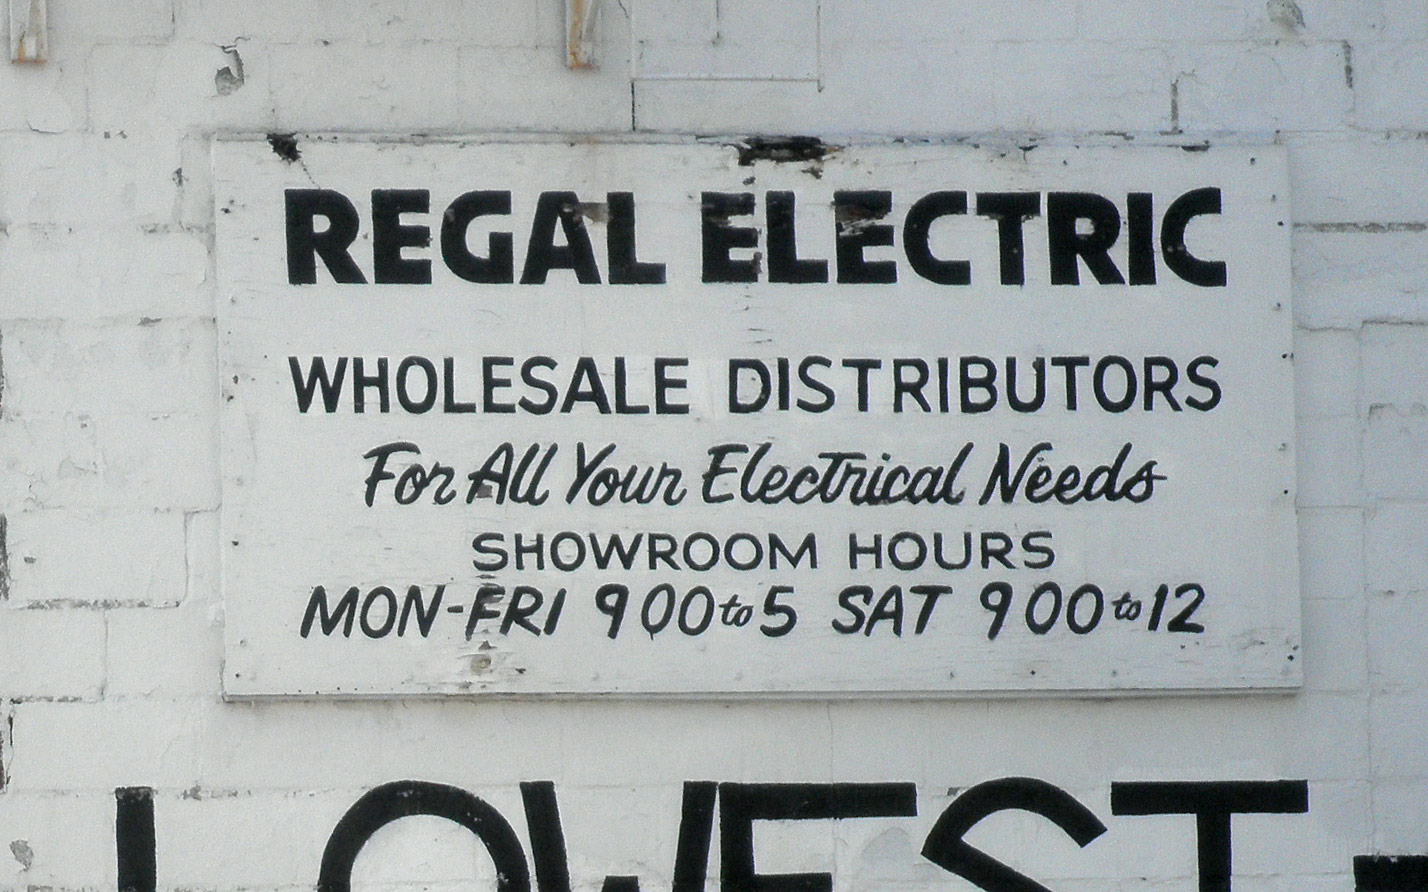 Regal Electric Wholesale Distributors